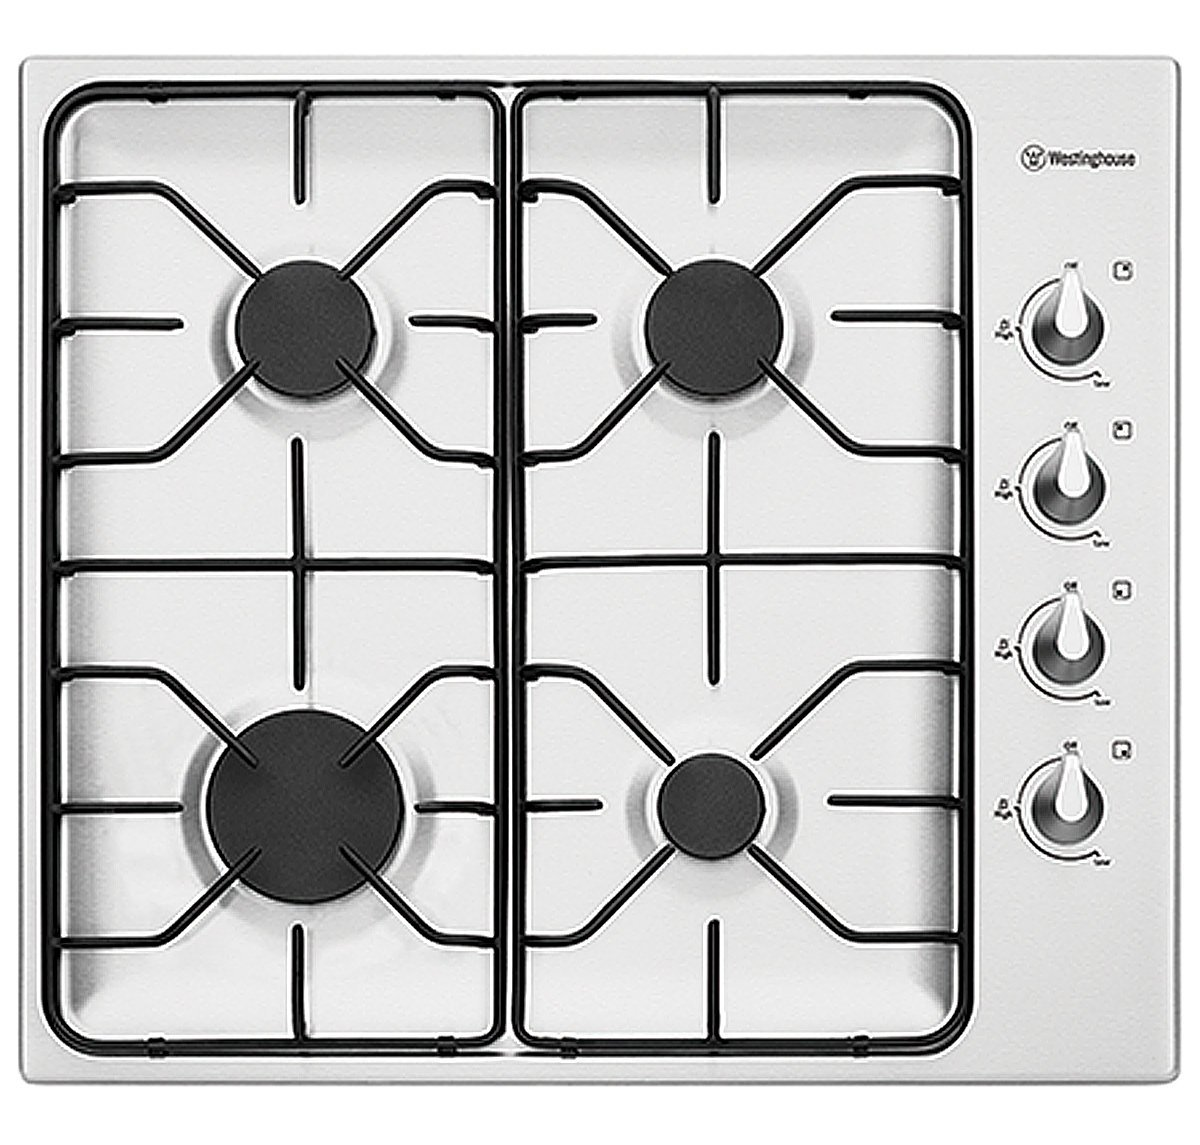 Westinghouse WHG640SB 60cm Natural Gas Cooktop 156781